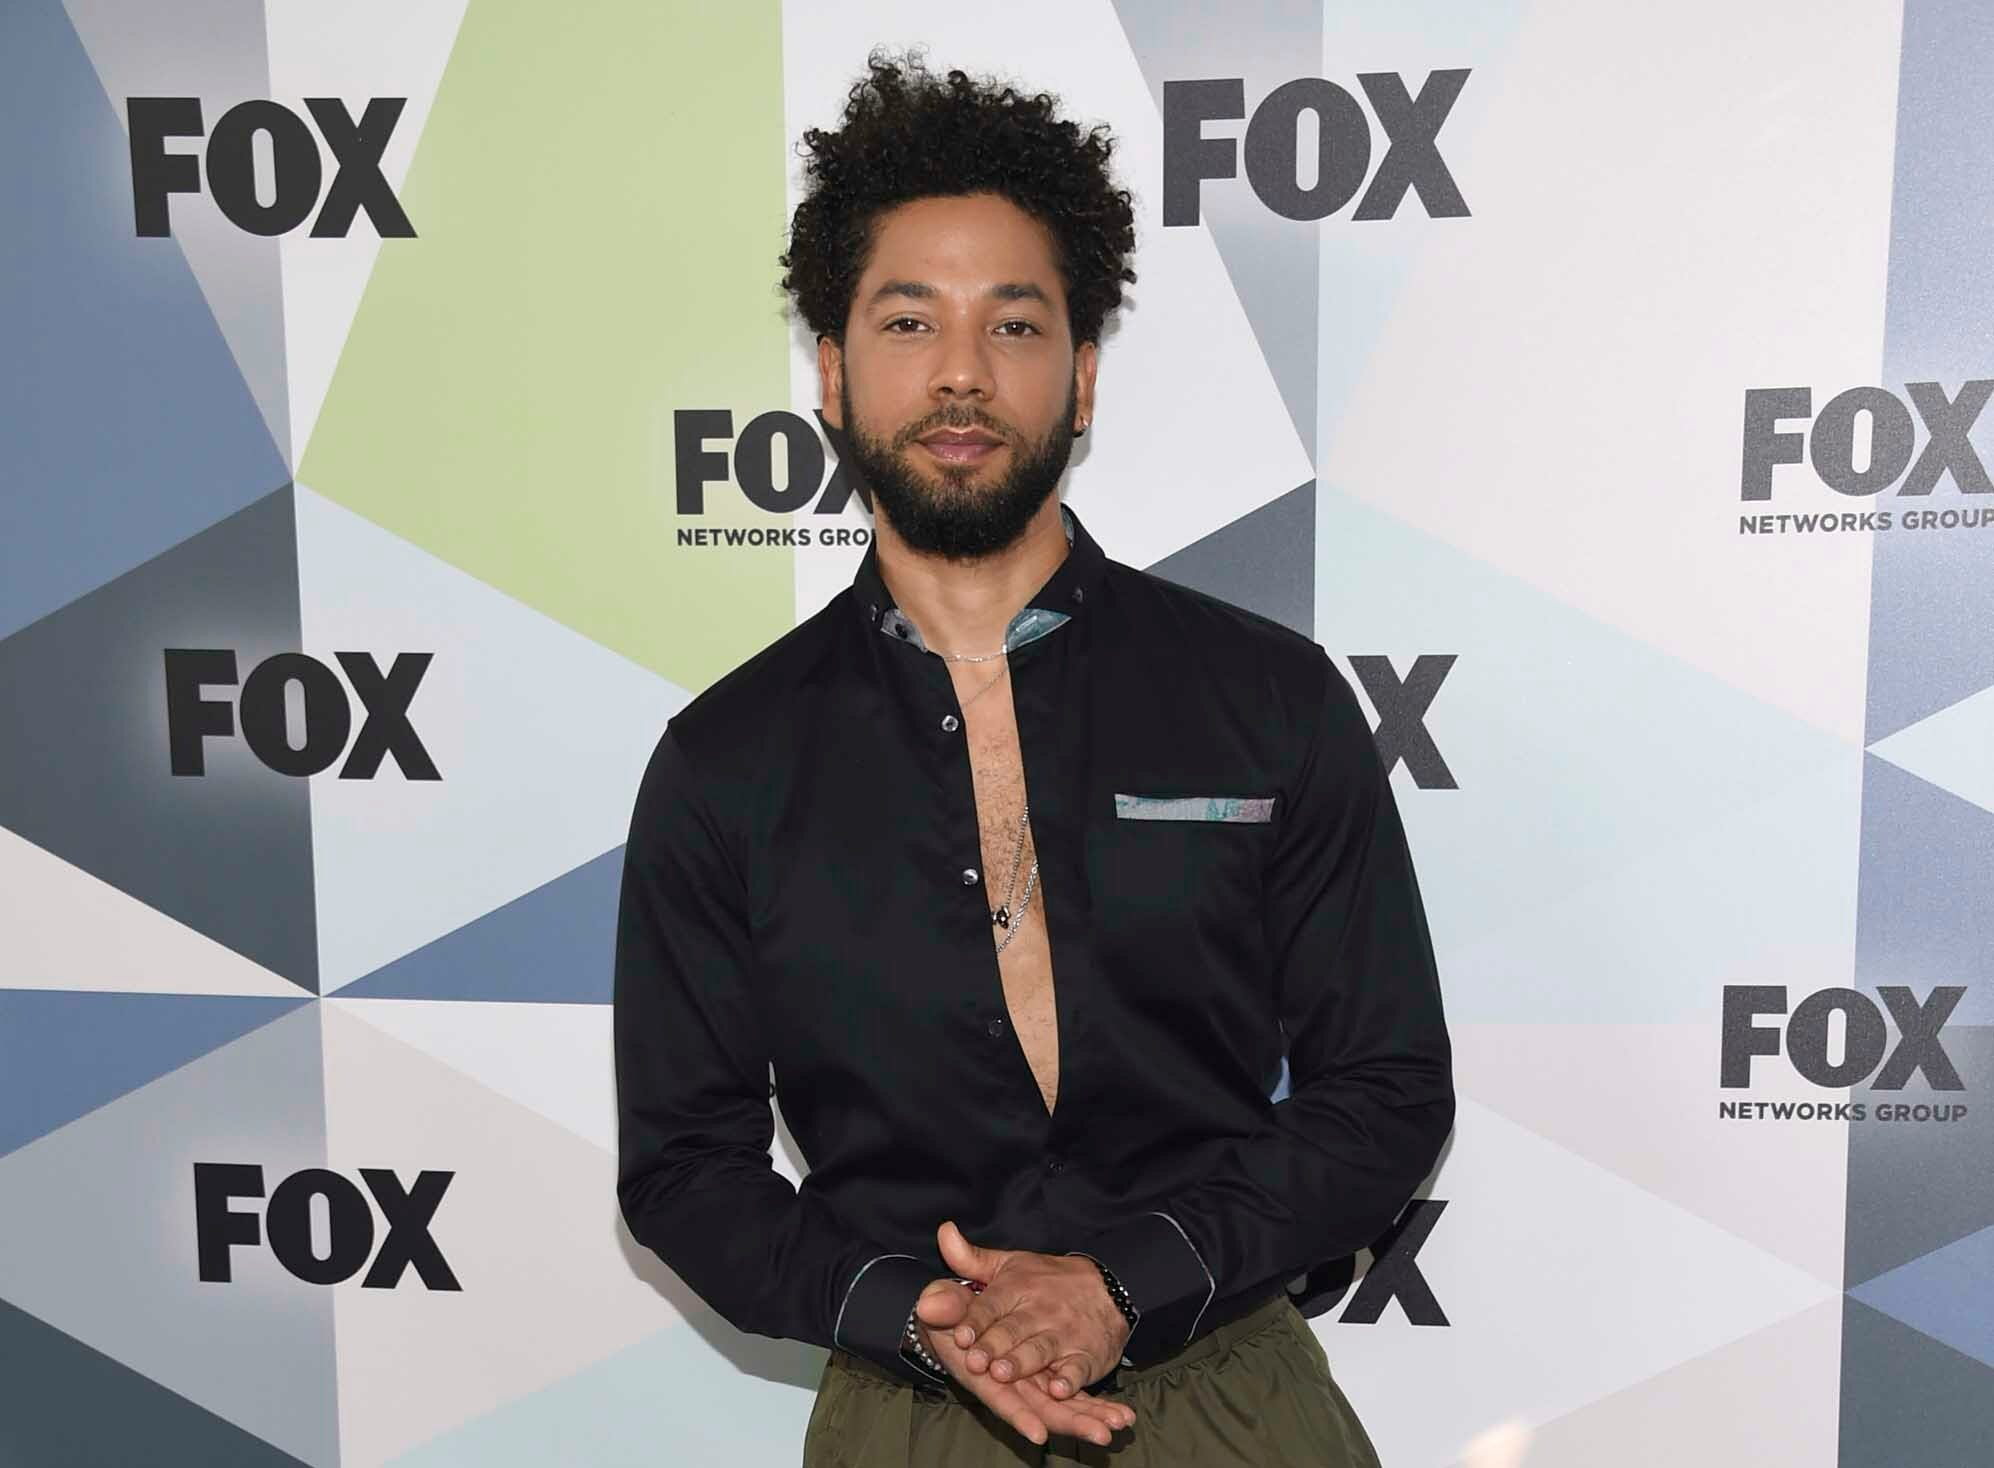 Jussie Smollett case: Two men released after police interrogation reveals 'new evidence'